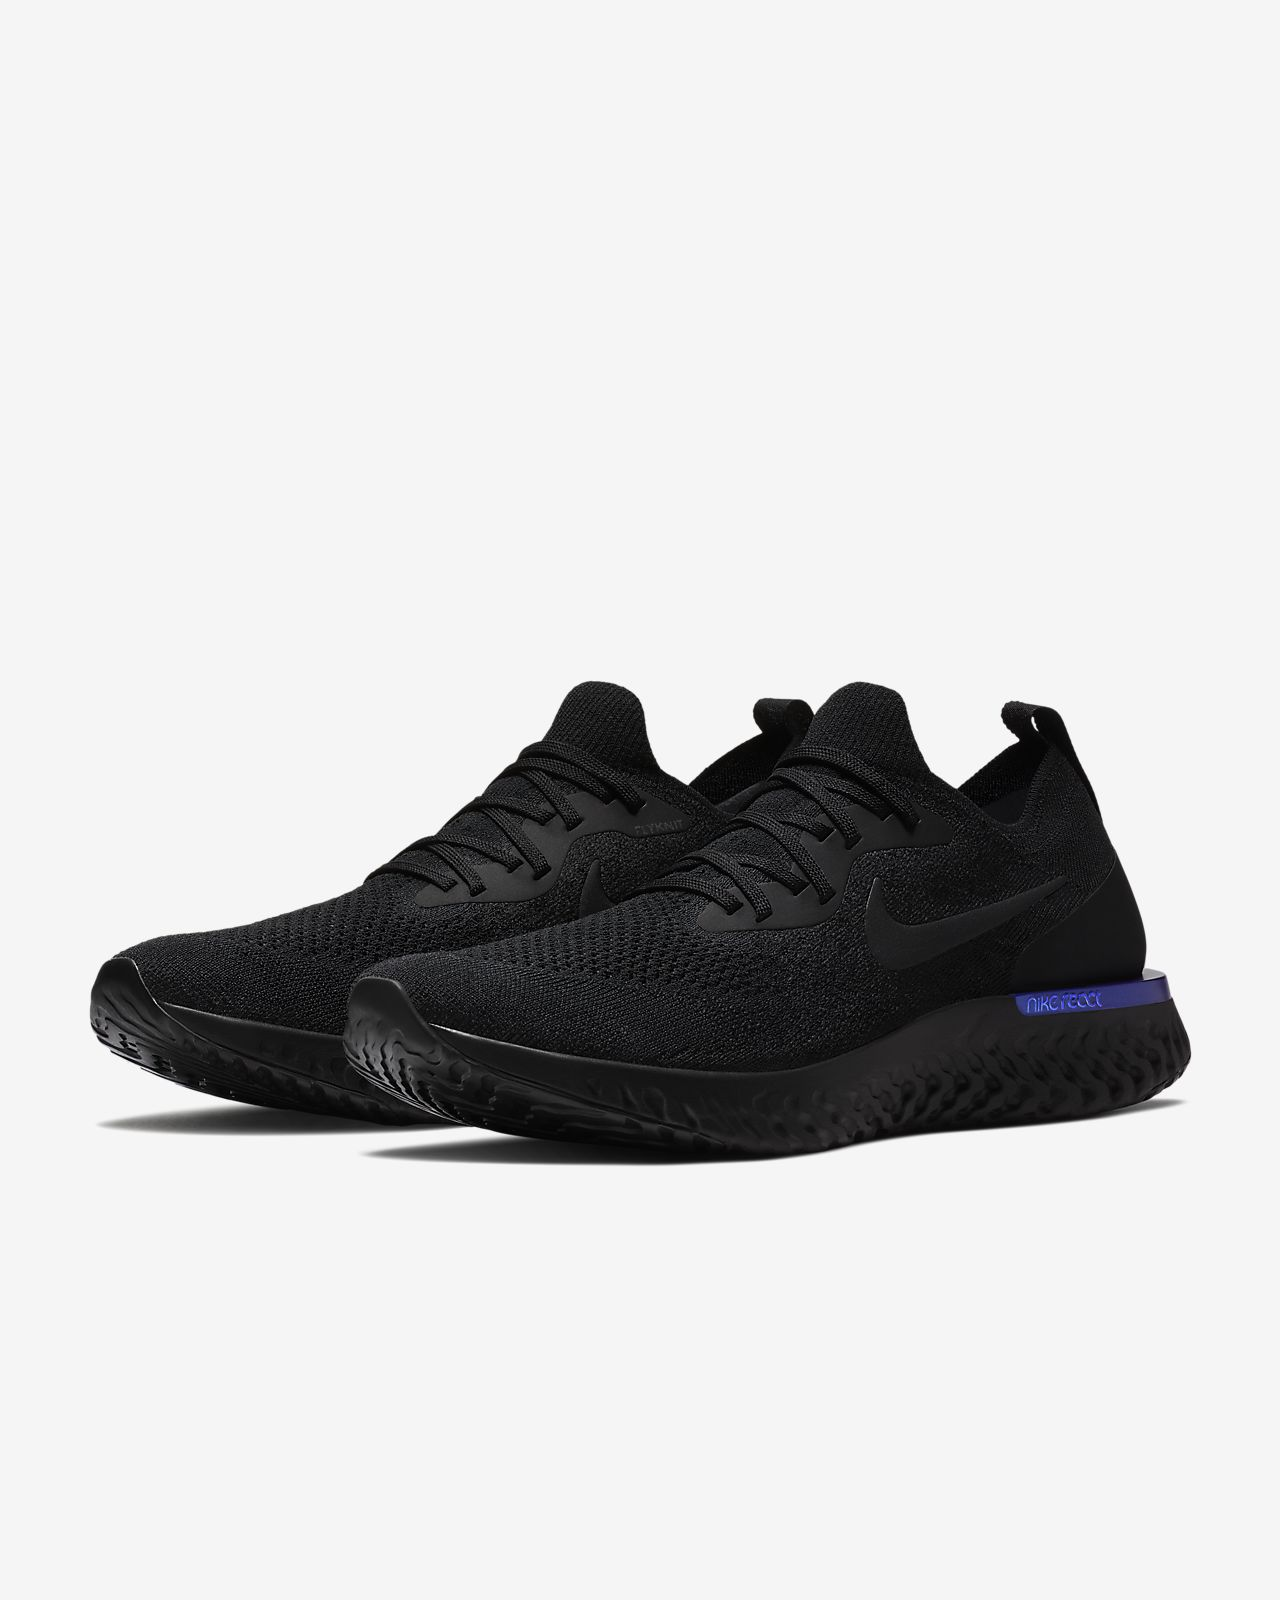 online store 1f227 96521 ... Nike Epic React Flyknit Men s Running Shoe